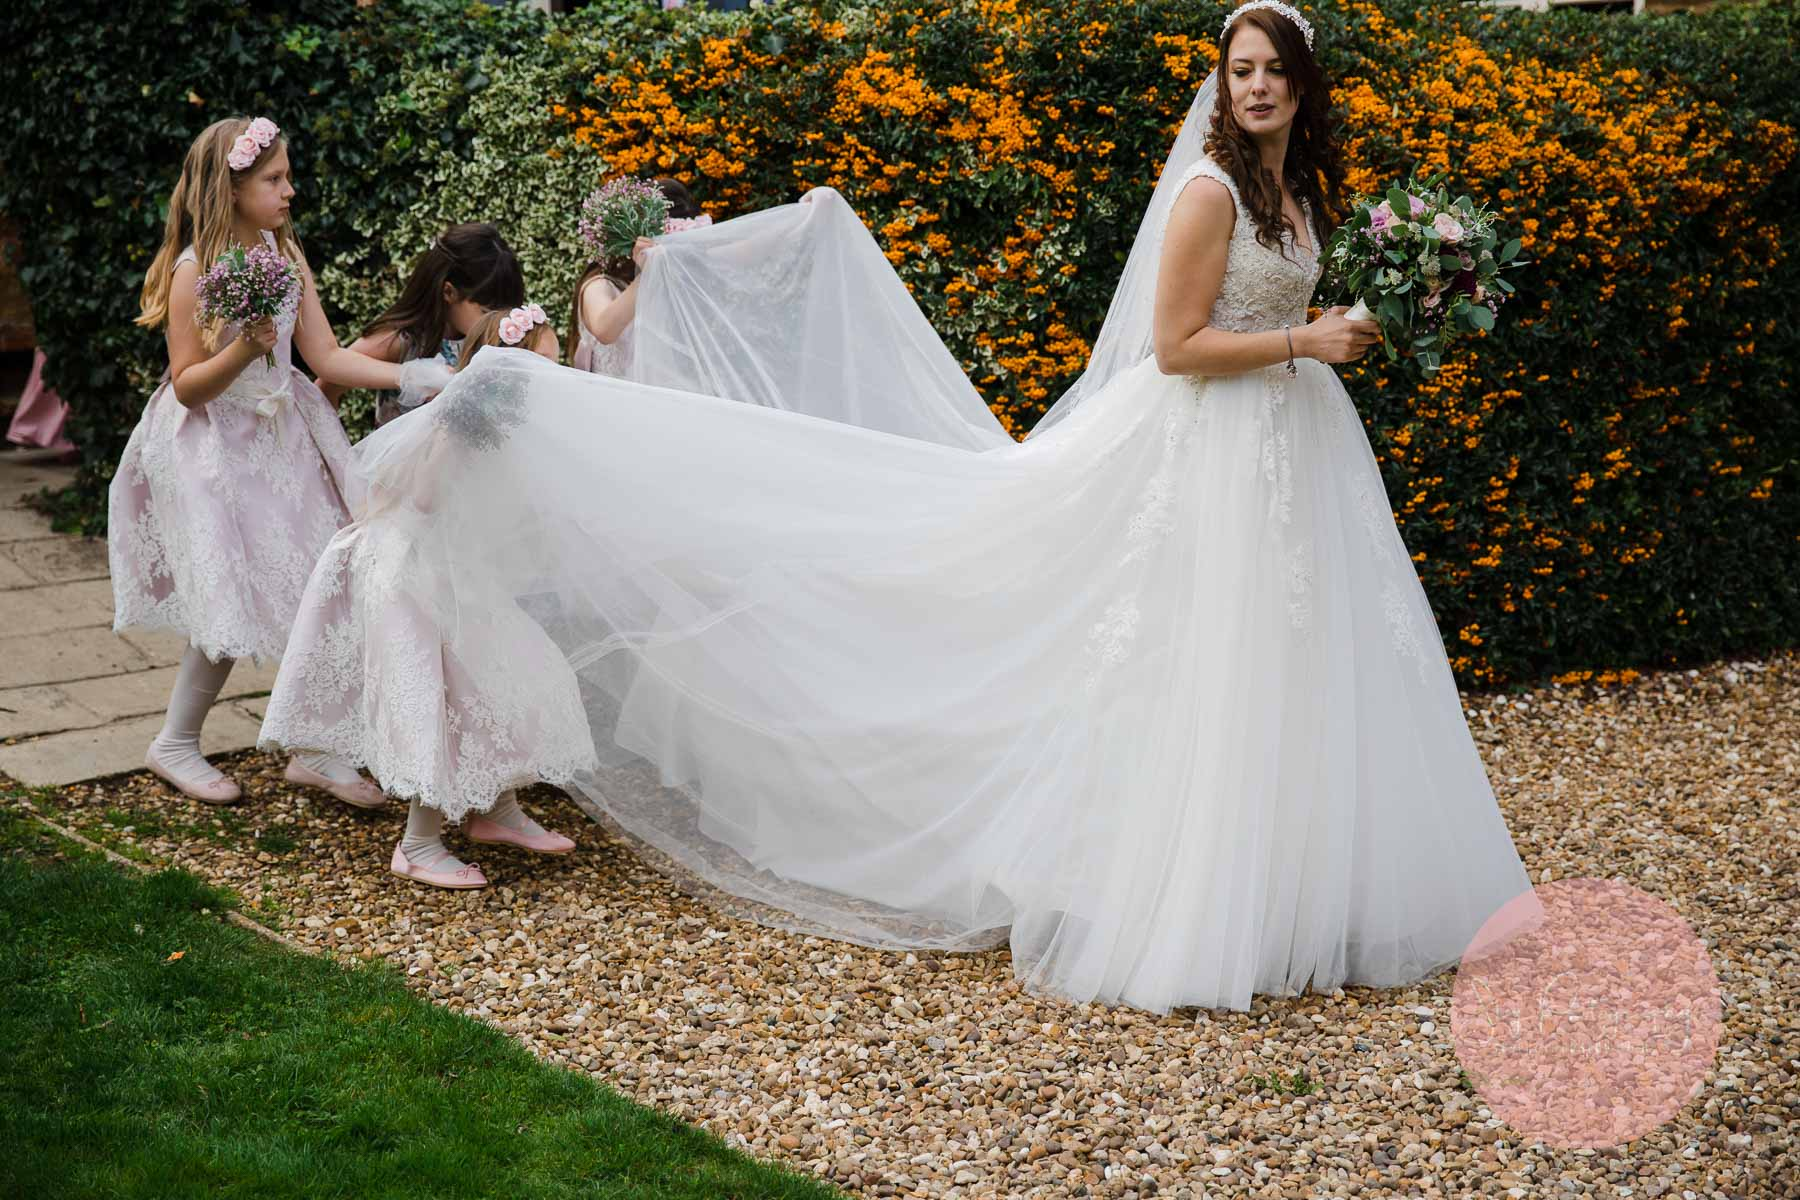 brides dress being carried by flower girls